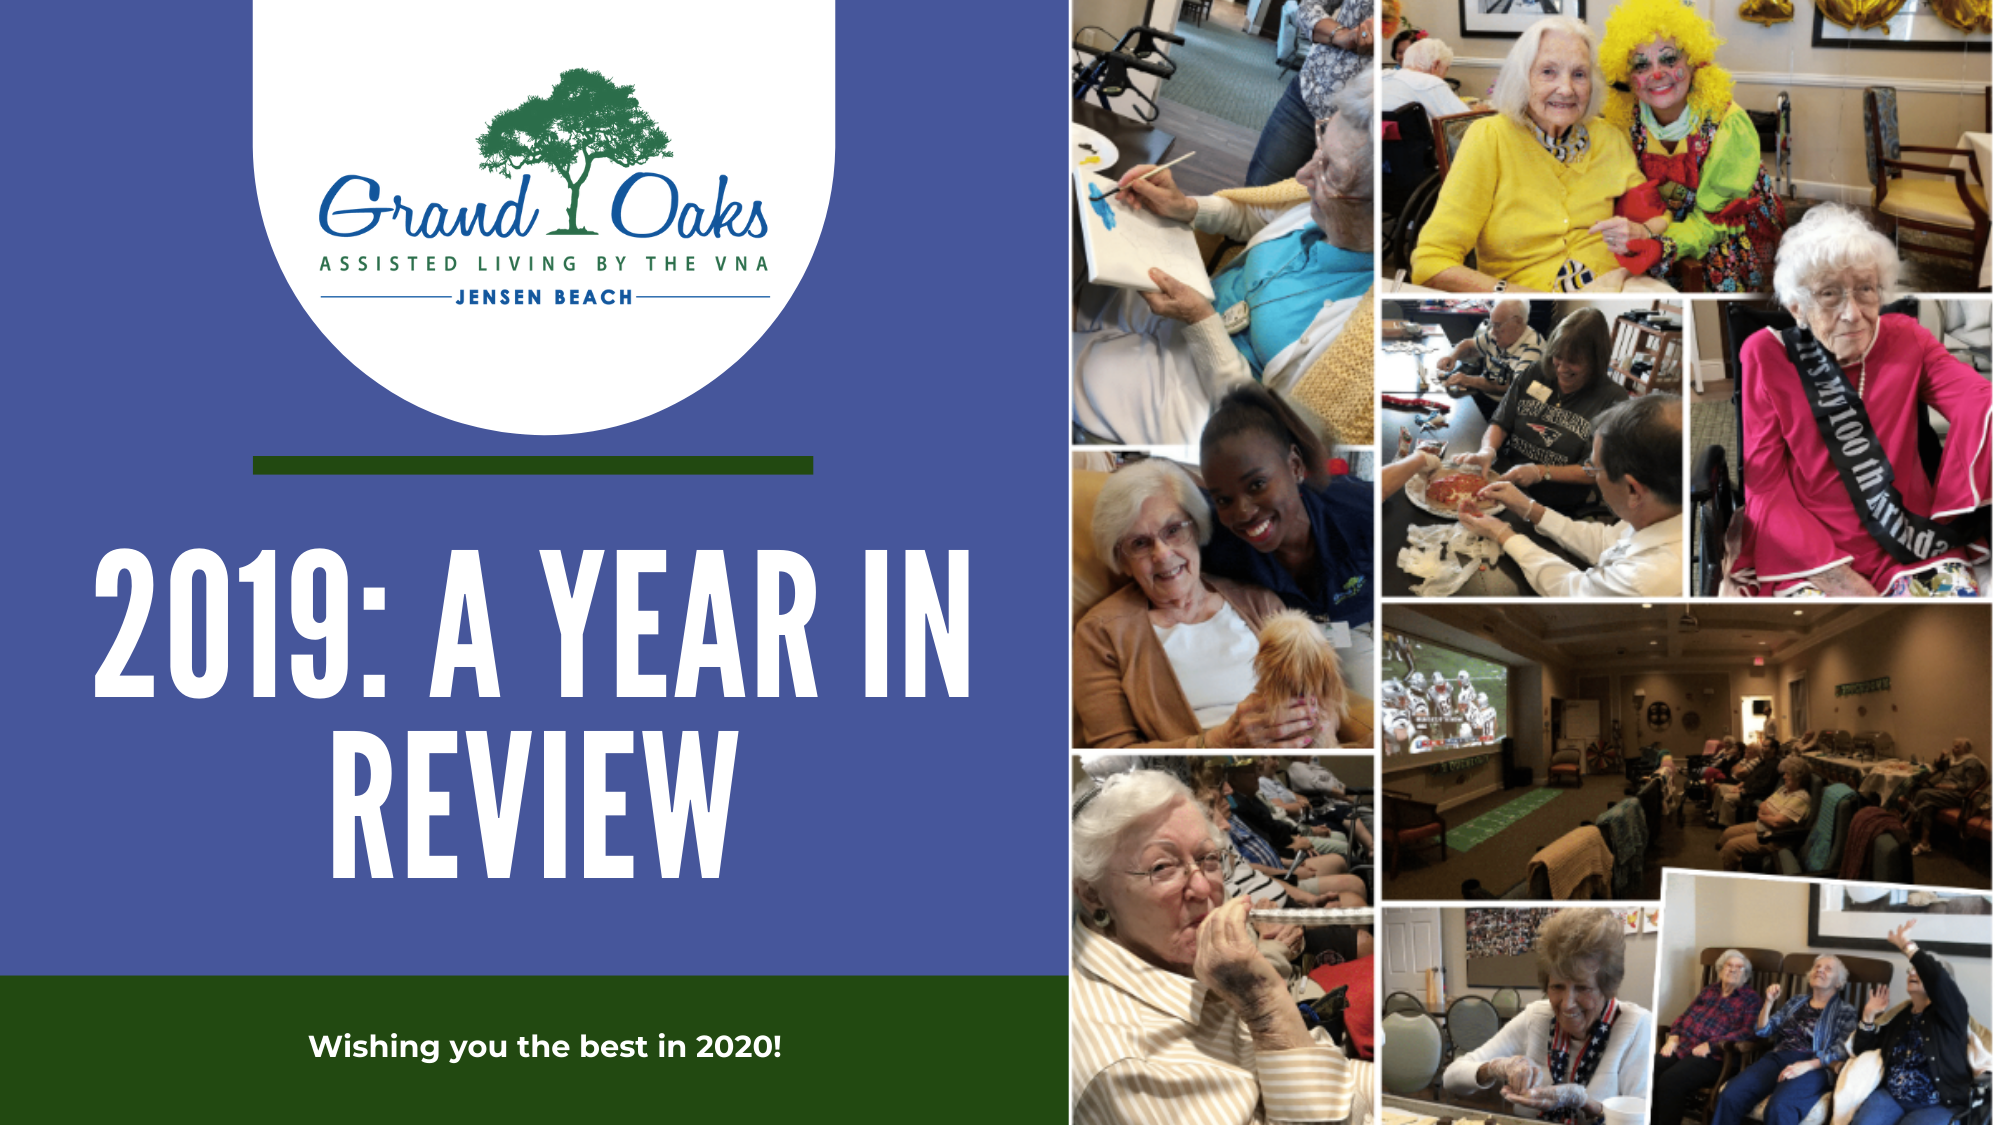 Grand Oaks of Jensen Beach: 2019, a Year in Review